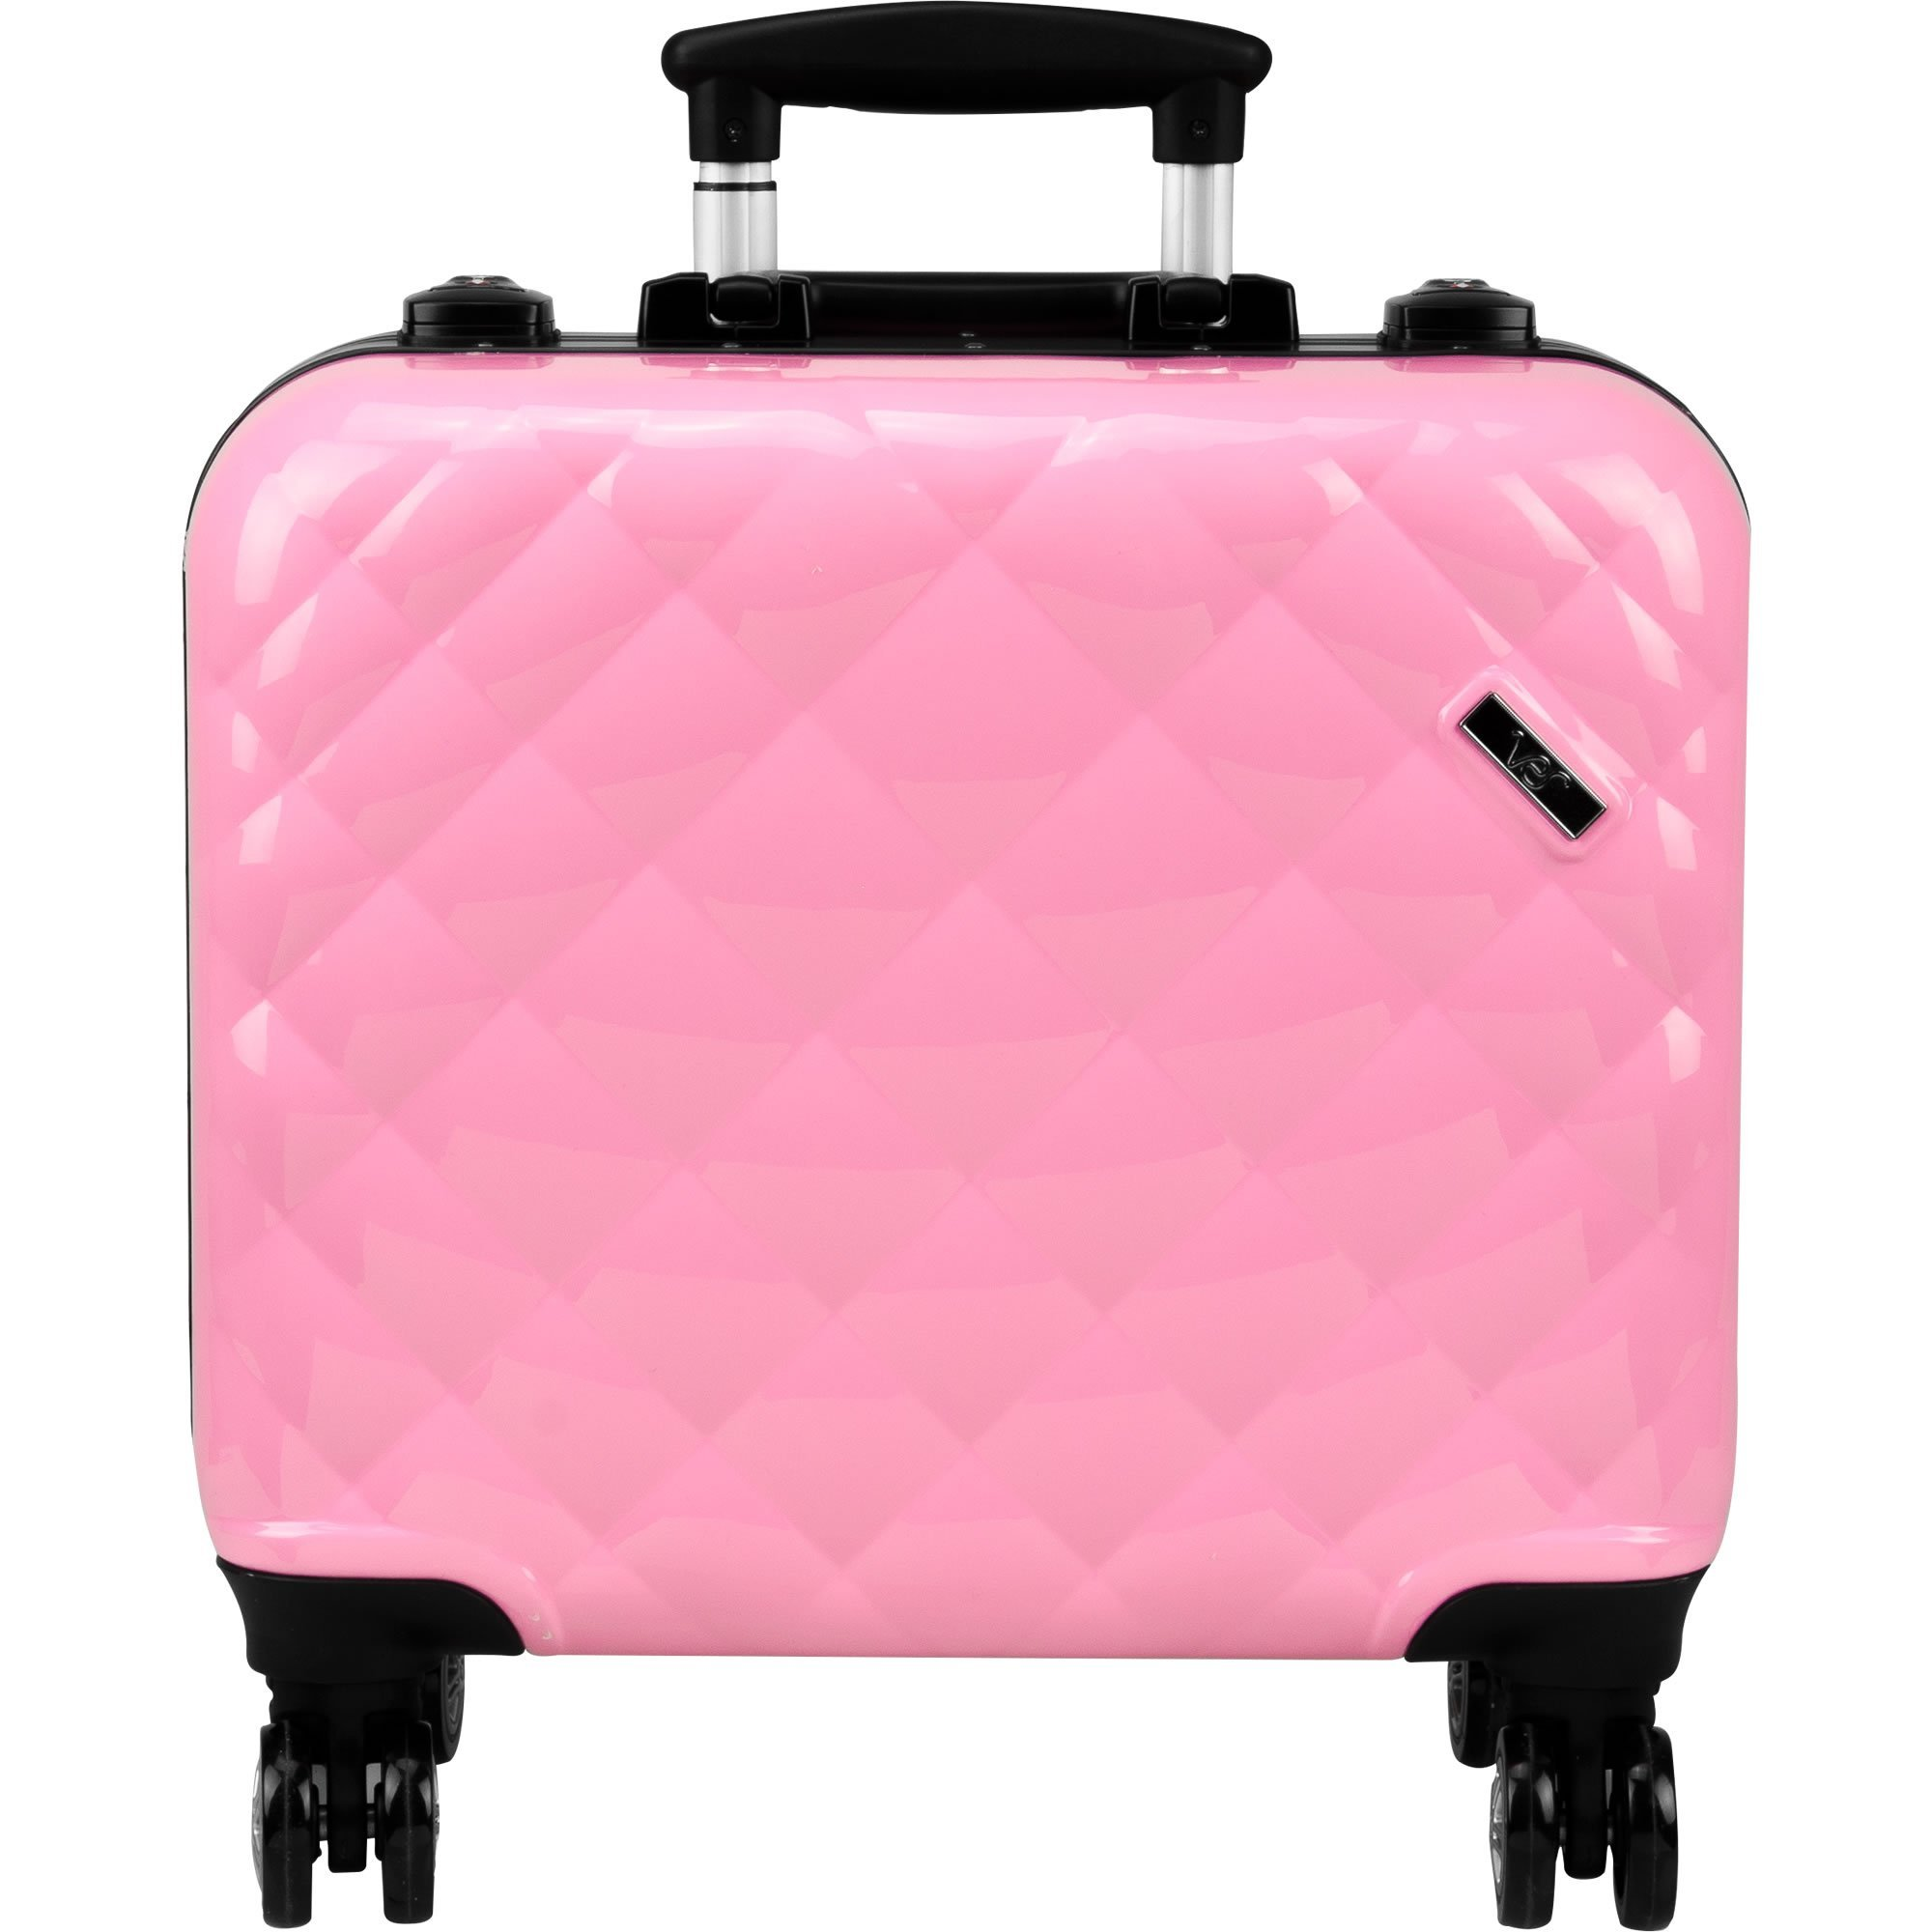 Ver Beauty Professional Travel 4-Wheels Rolling Makeup Studio Case, Quilted Pink by Ver Beauty